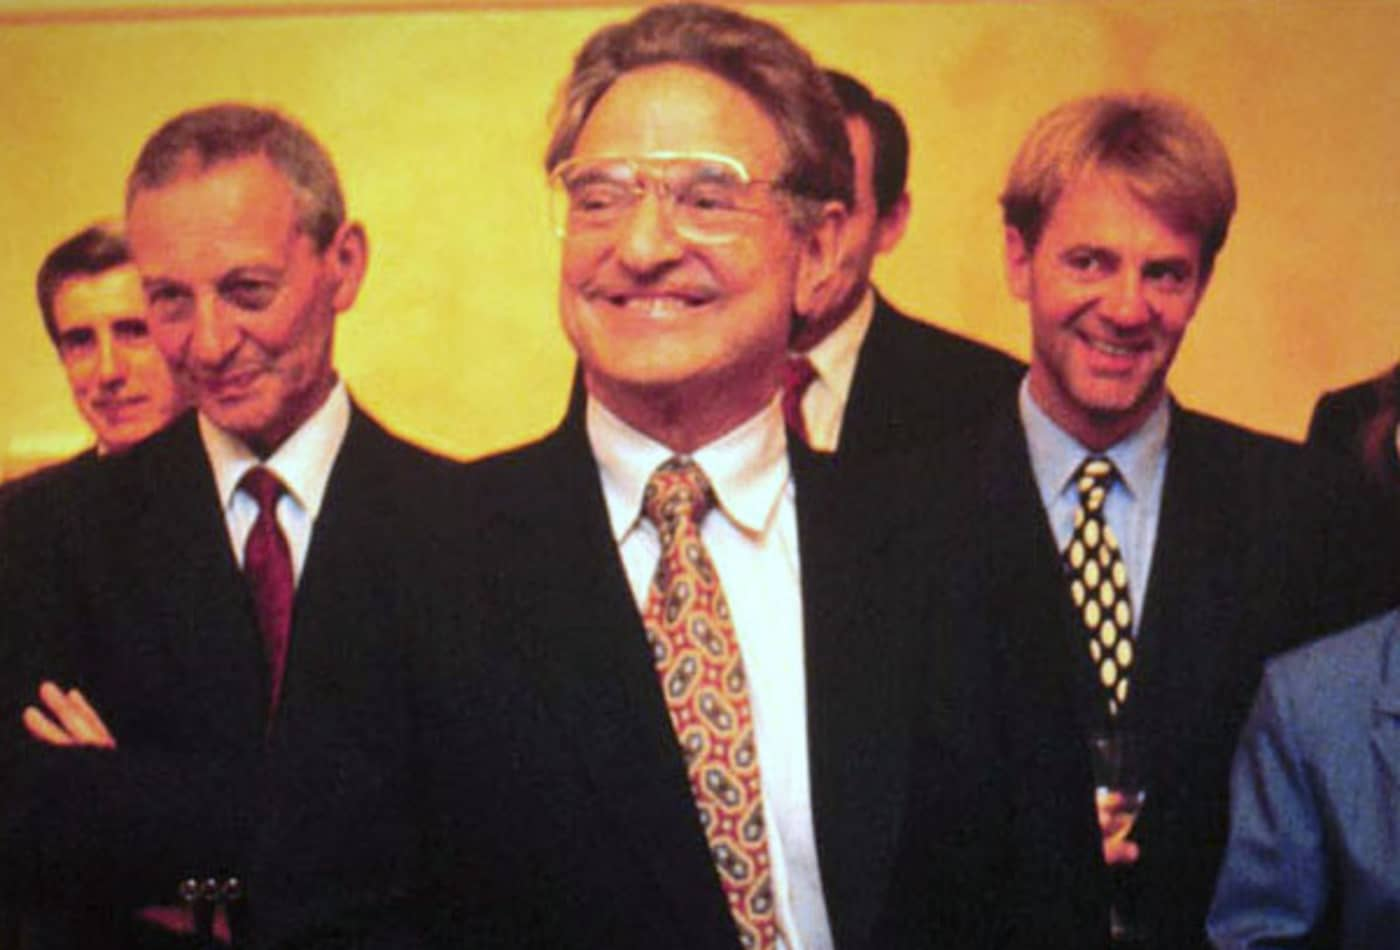 History-Making-Events-Currency-Markets-George-Soros.jpg